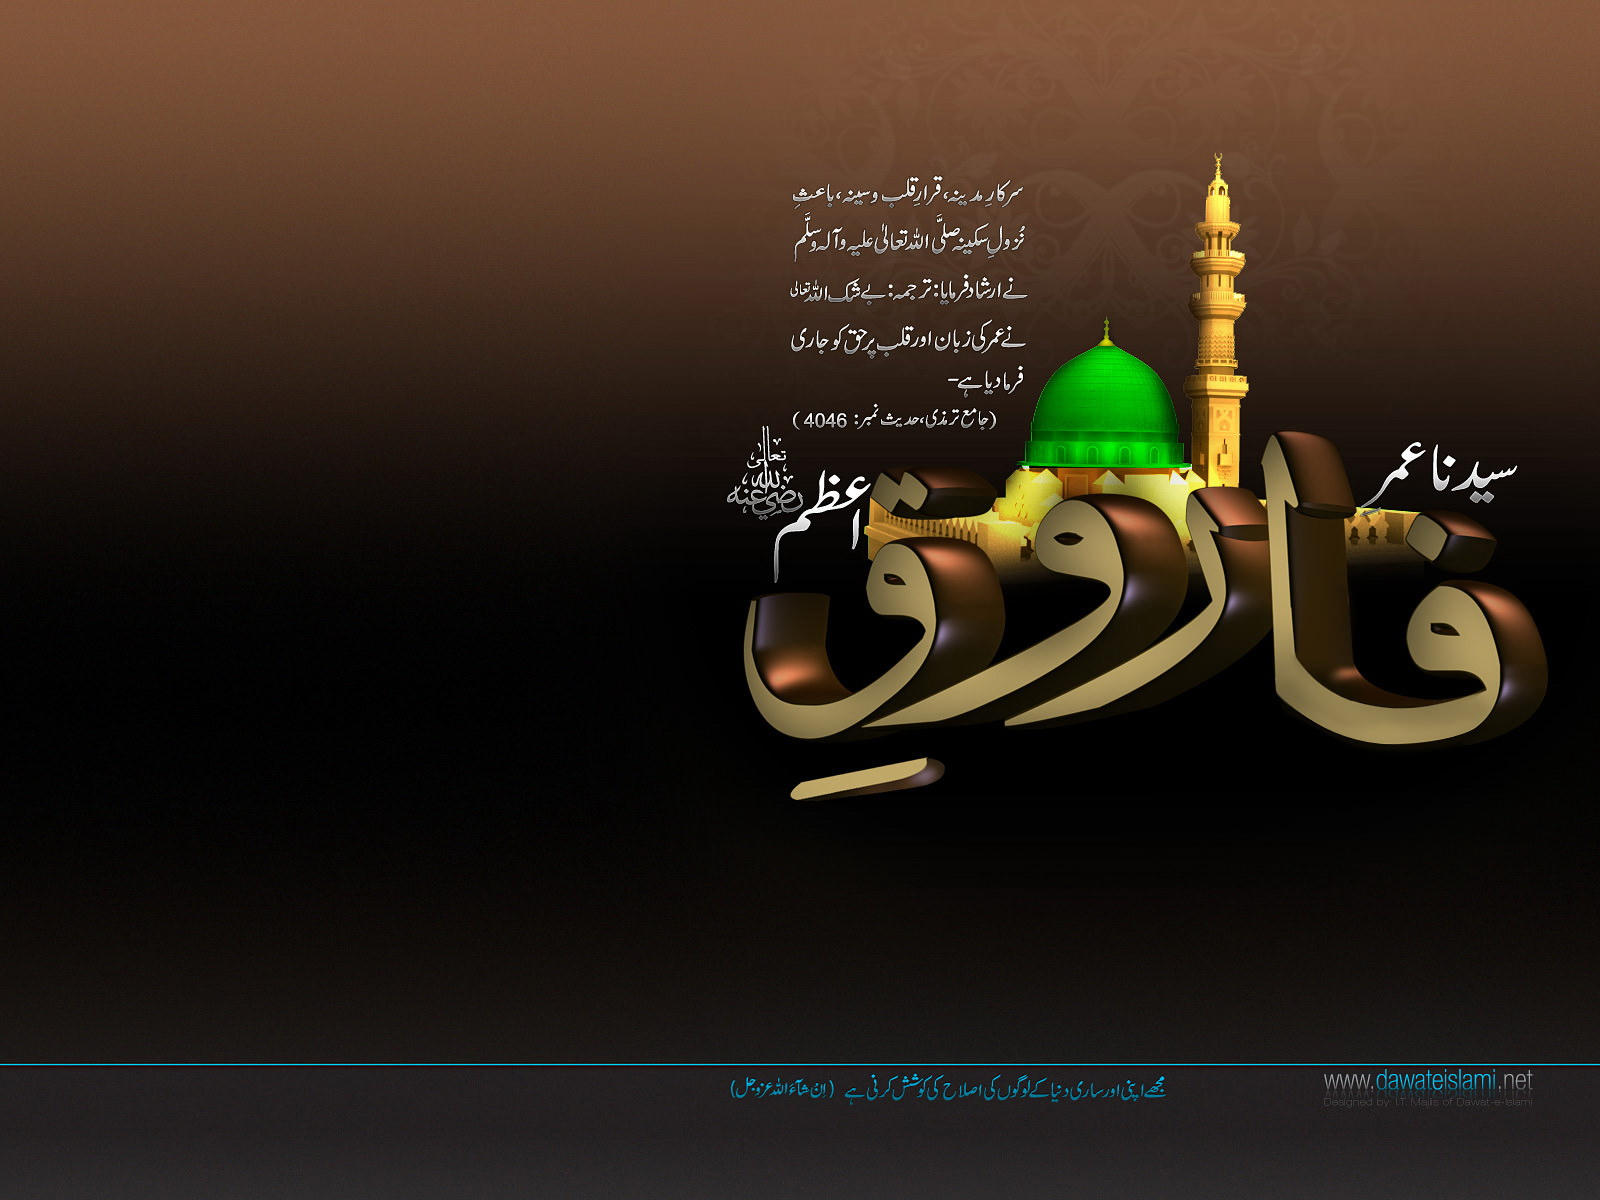 Wallpapers Faizan-e-Farooq-e-Azam 3